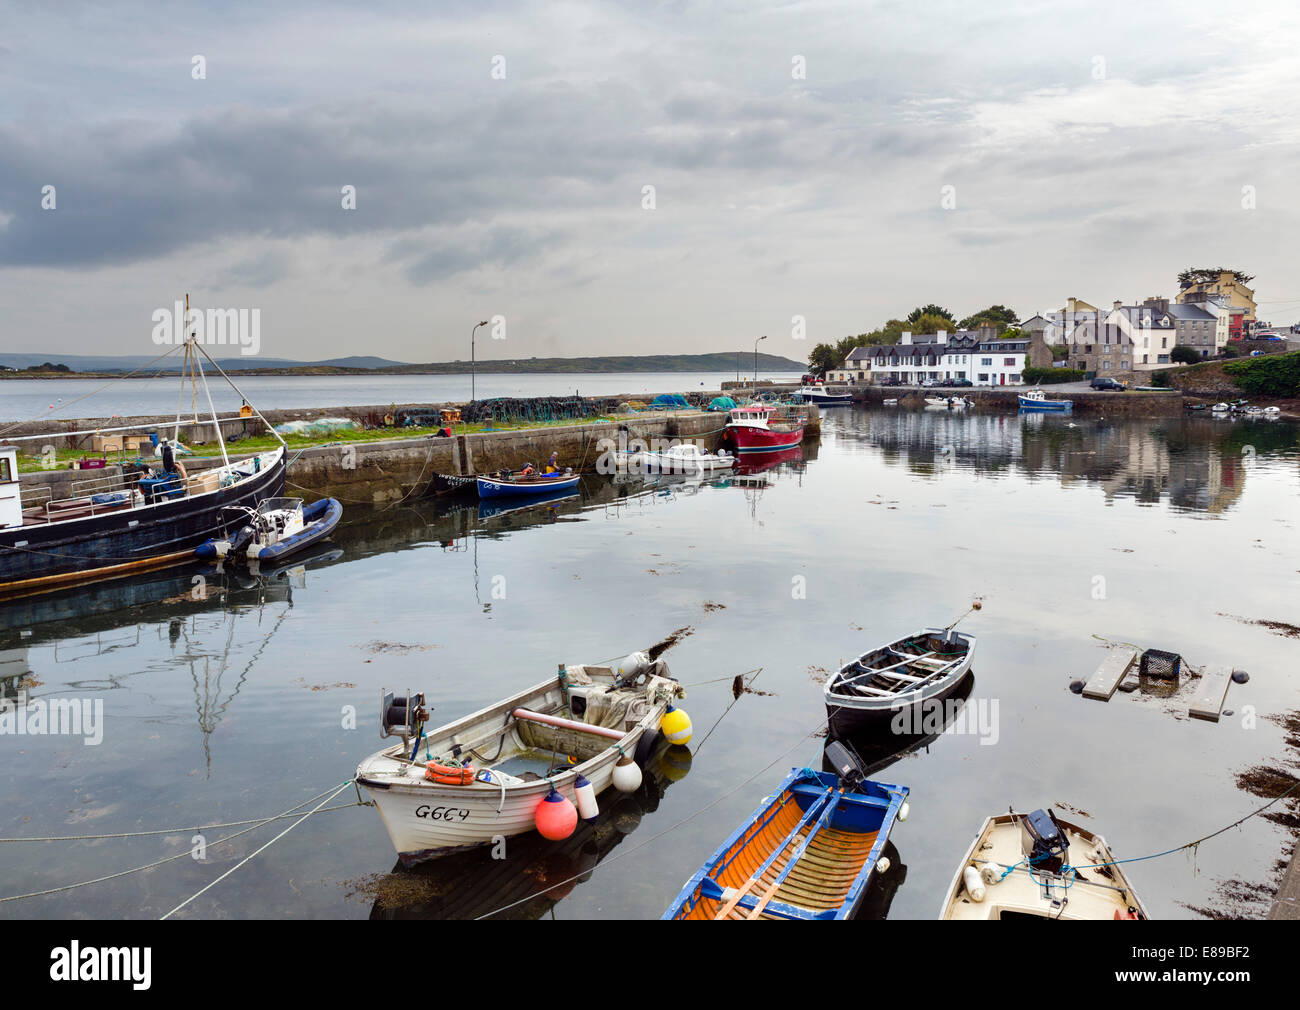 The picturesque harbour of Roundstone, Connemara, County Galway, Republic of Ireland - Stock Image